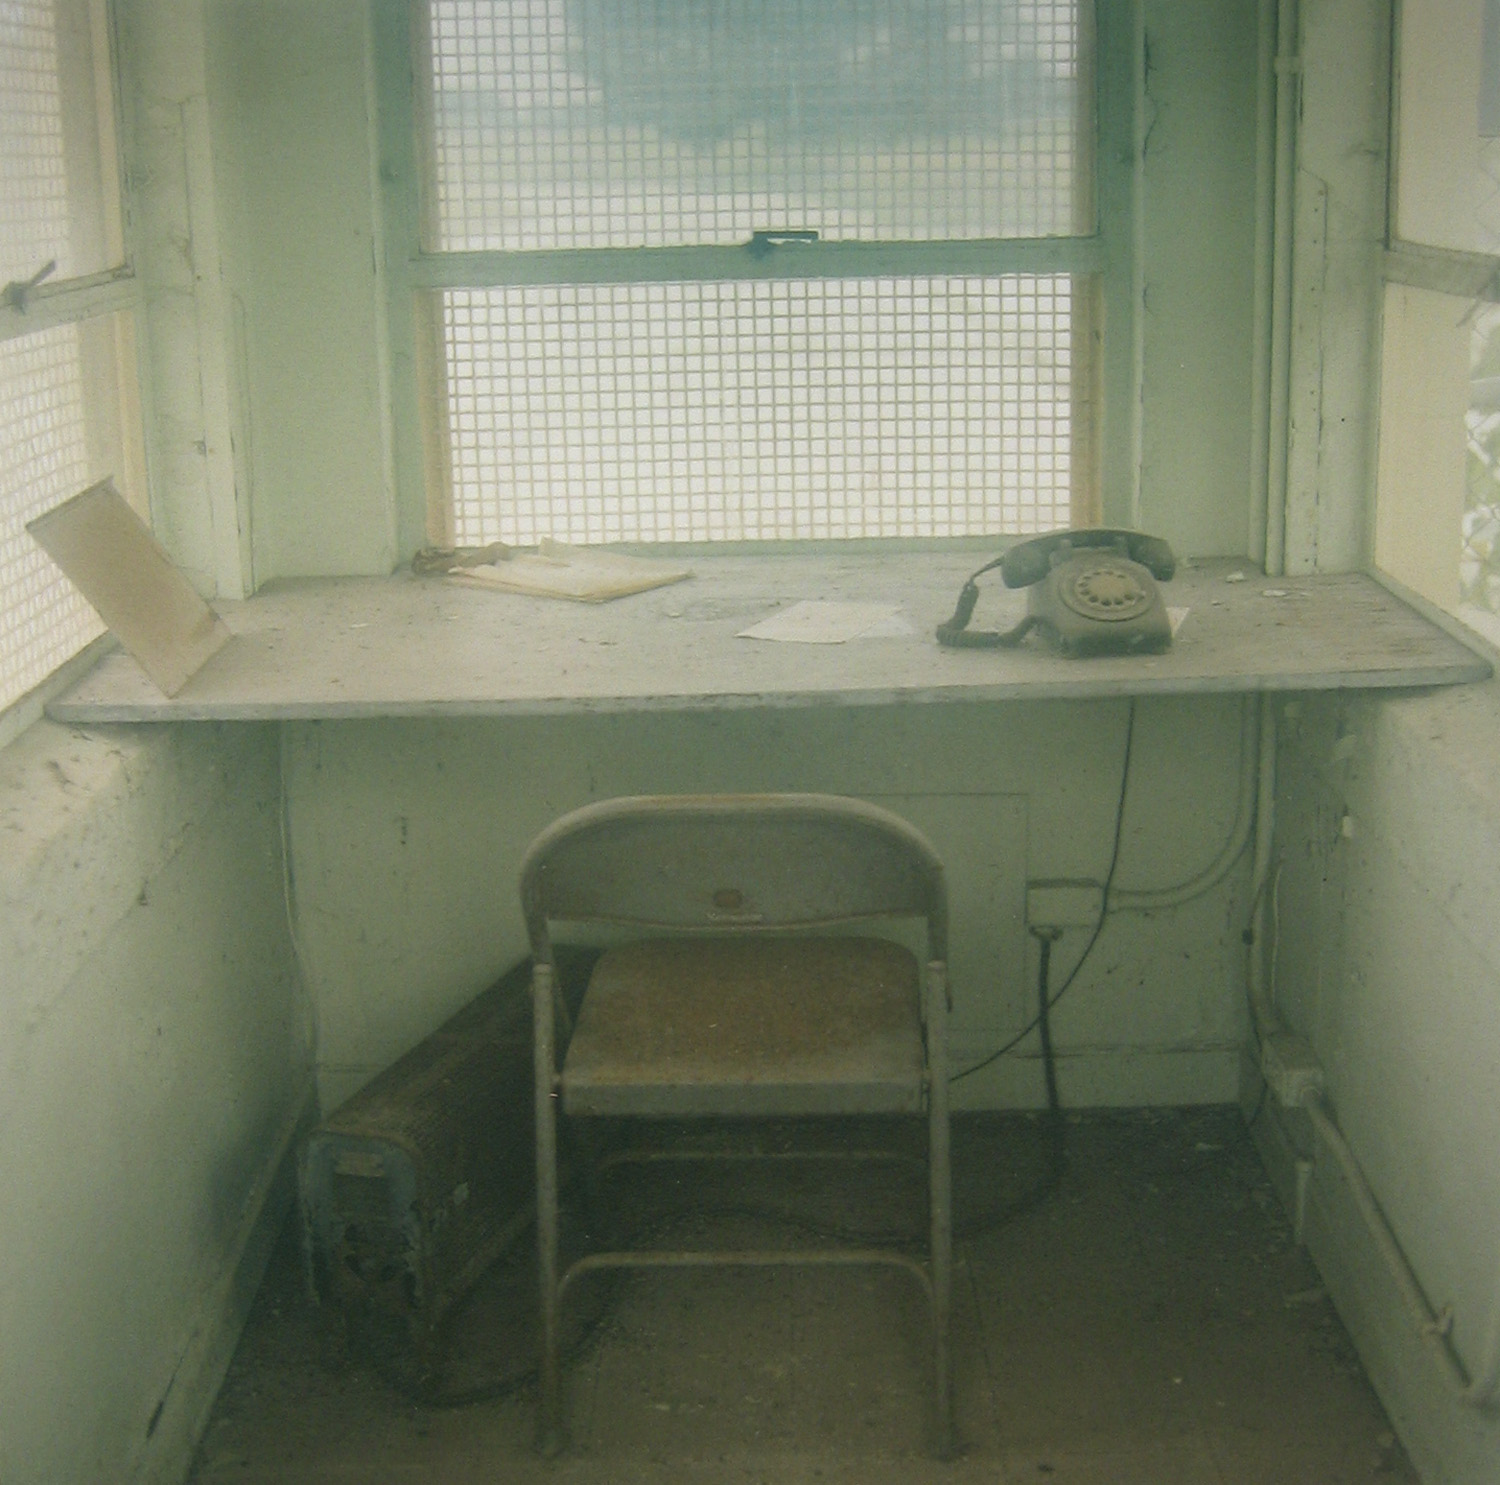 Guard house interior, noncommissioned officers' housing, July 28, 1996